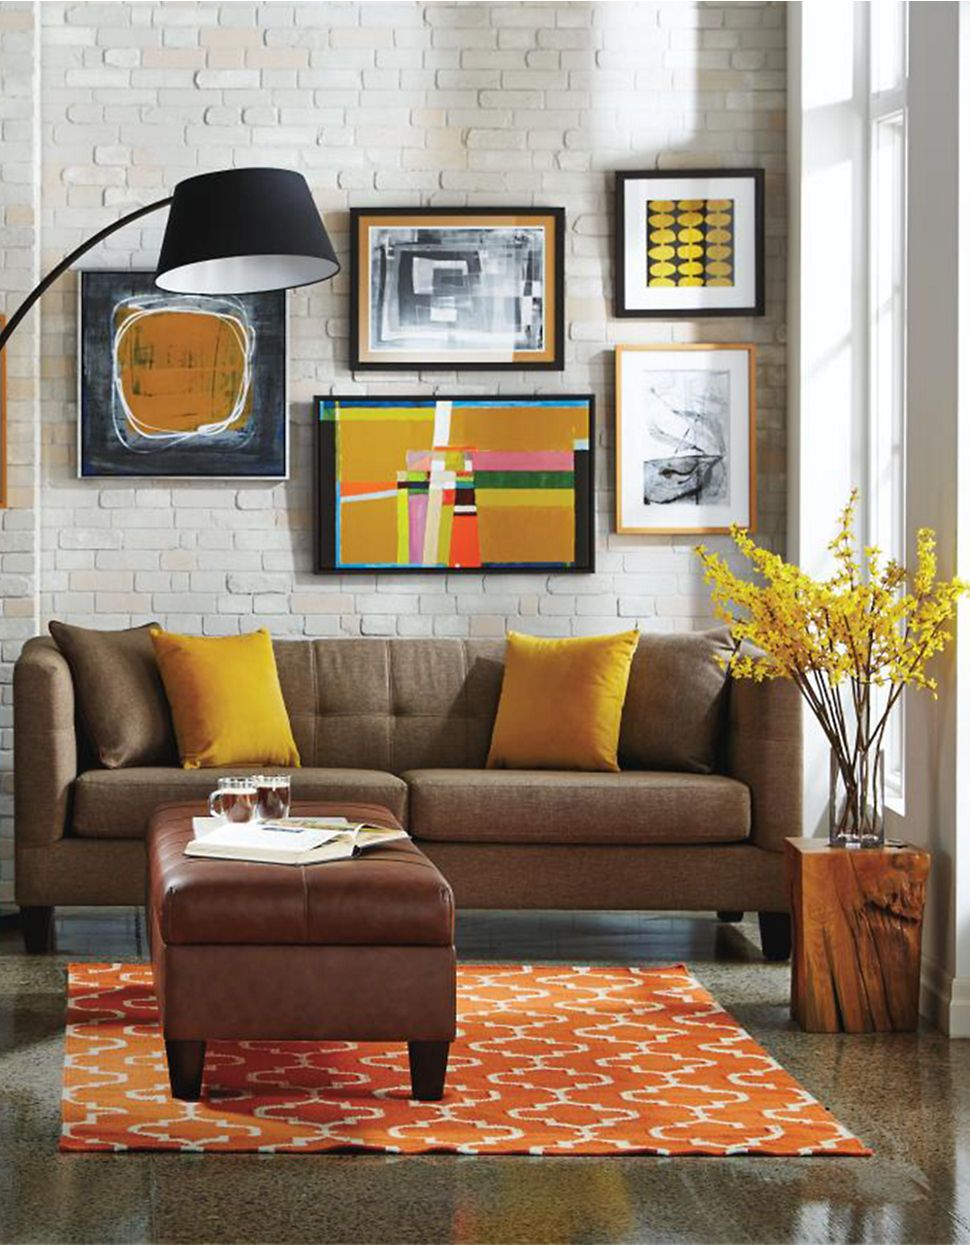 Touch Of Yellow Charles Sofa  Hudson's Bay  Home  Pinterest Interesting Interior Design For Living Room Decorating Inspiration